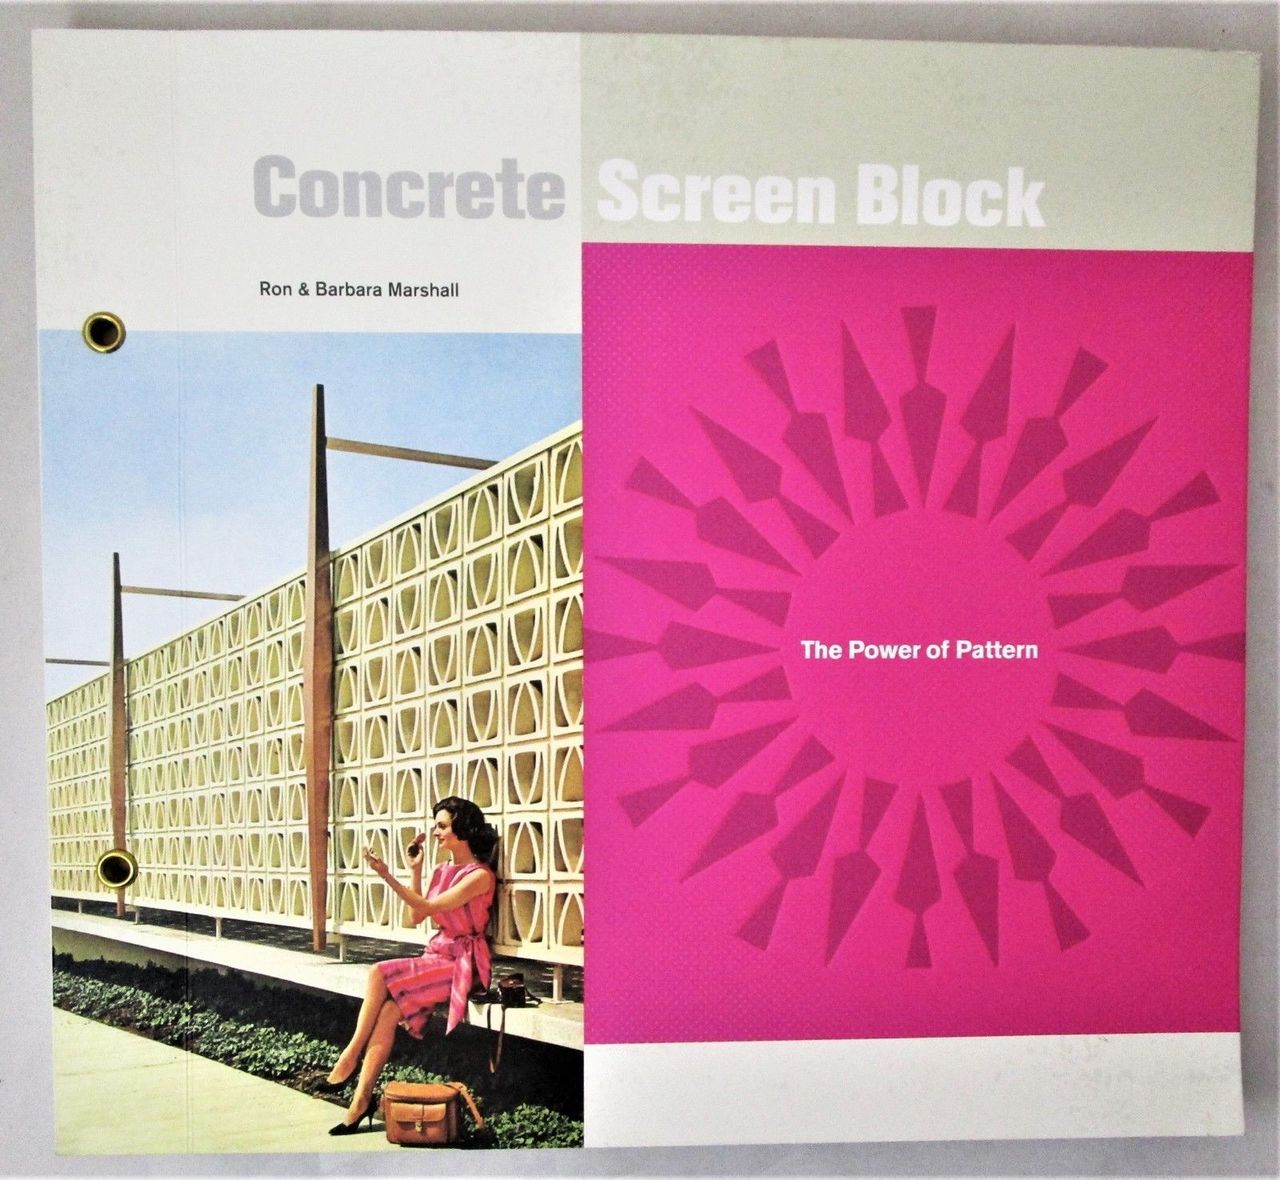 CONCRETE SCREEN BLOCK: THE POWER OF PATTERN, by R&B Marshall - 2018